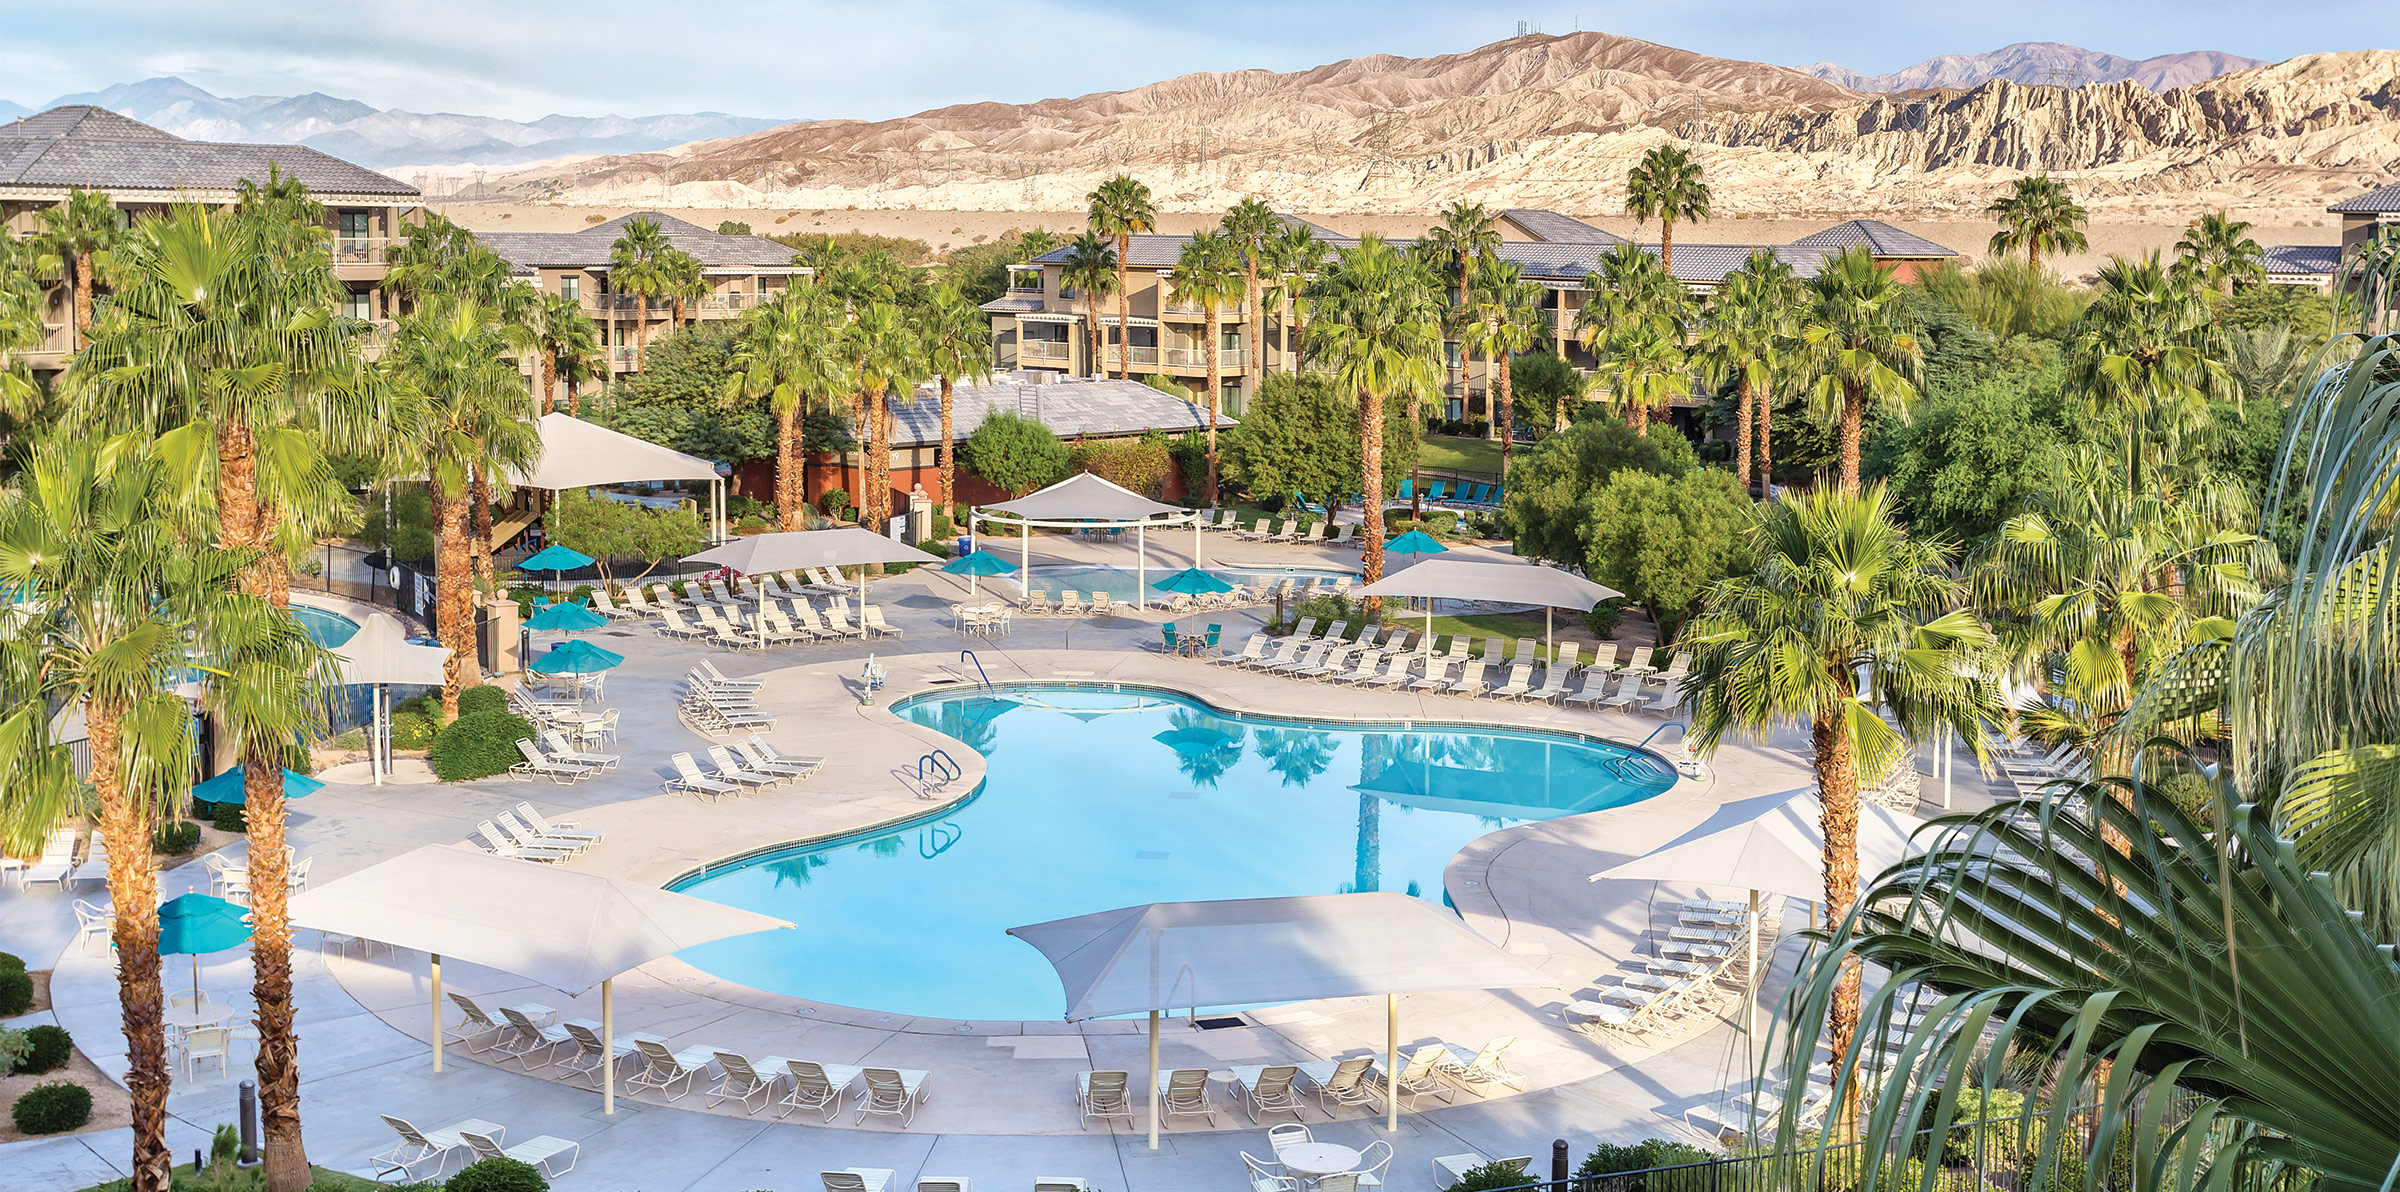 Apartment 2 Bedroom 2 Bath In Indio  CA   Palm Springs  5 miles from COACHELLA photo 18634360